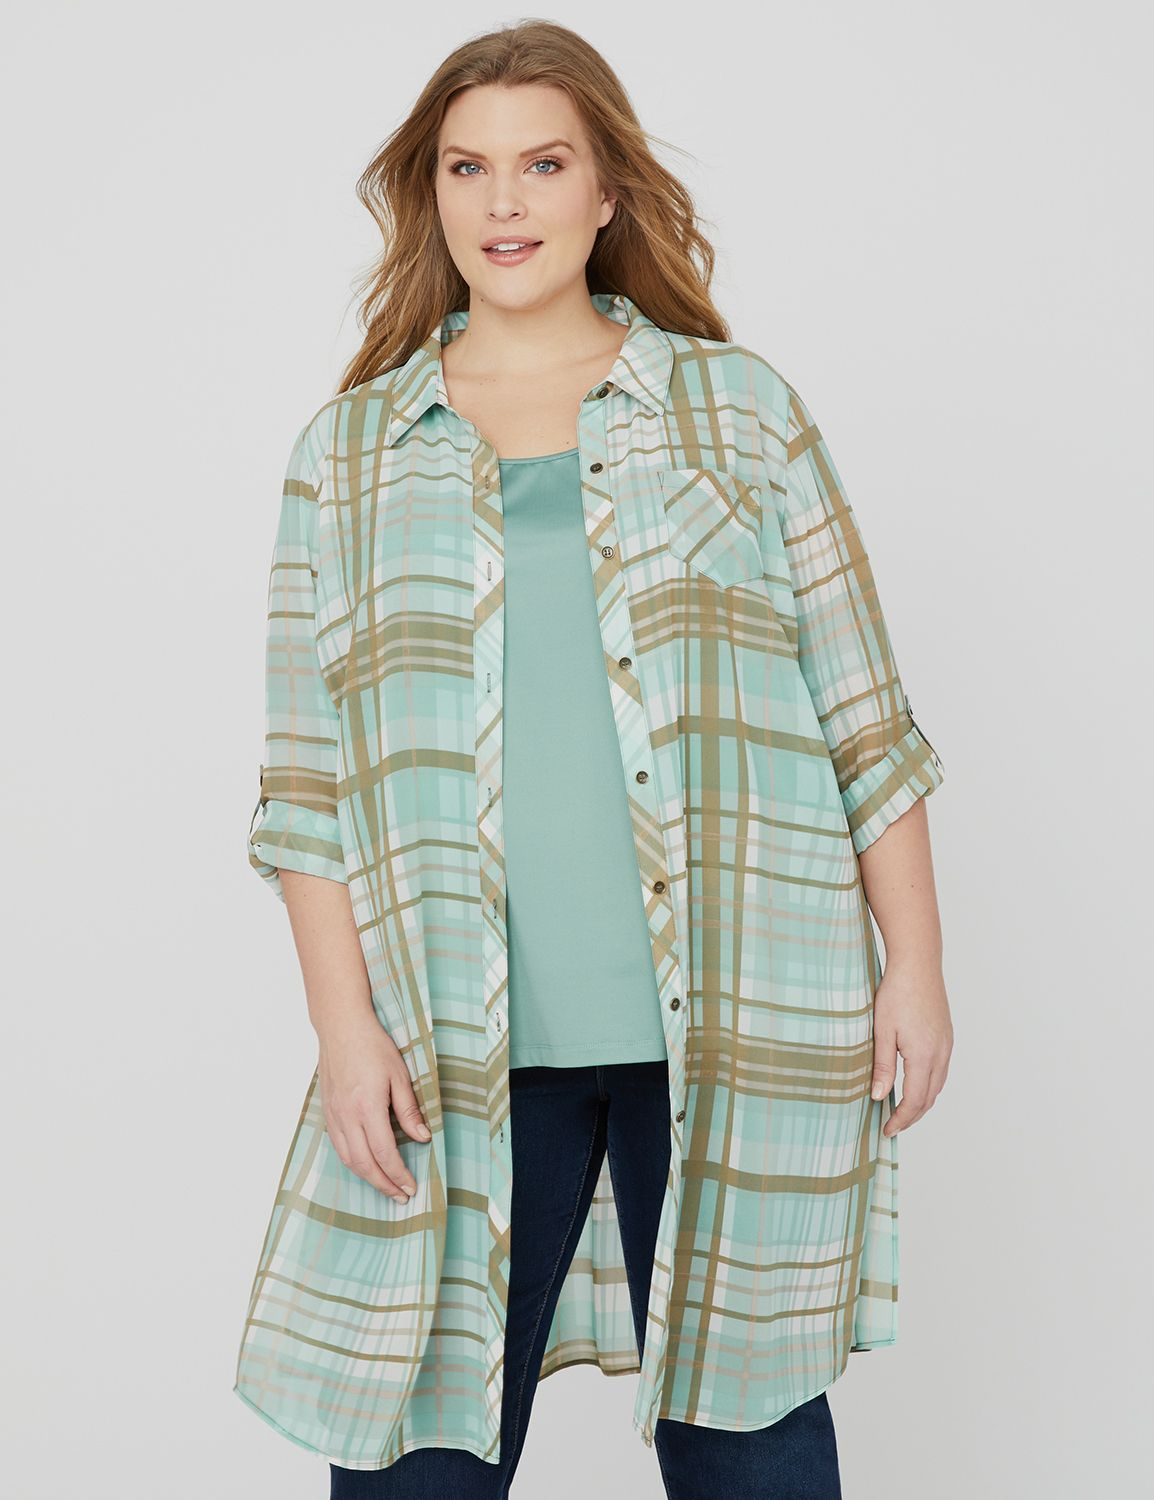 Riverwalk Plaid Duster 1081590-1091388 Long Roll 3Q Slv Bu MP-300103565